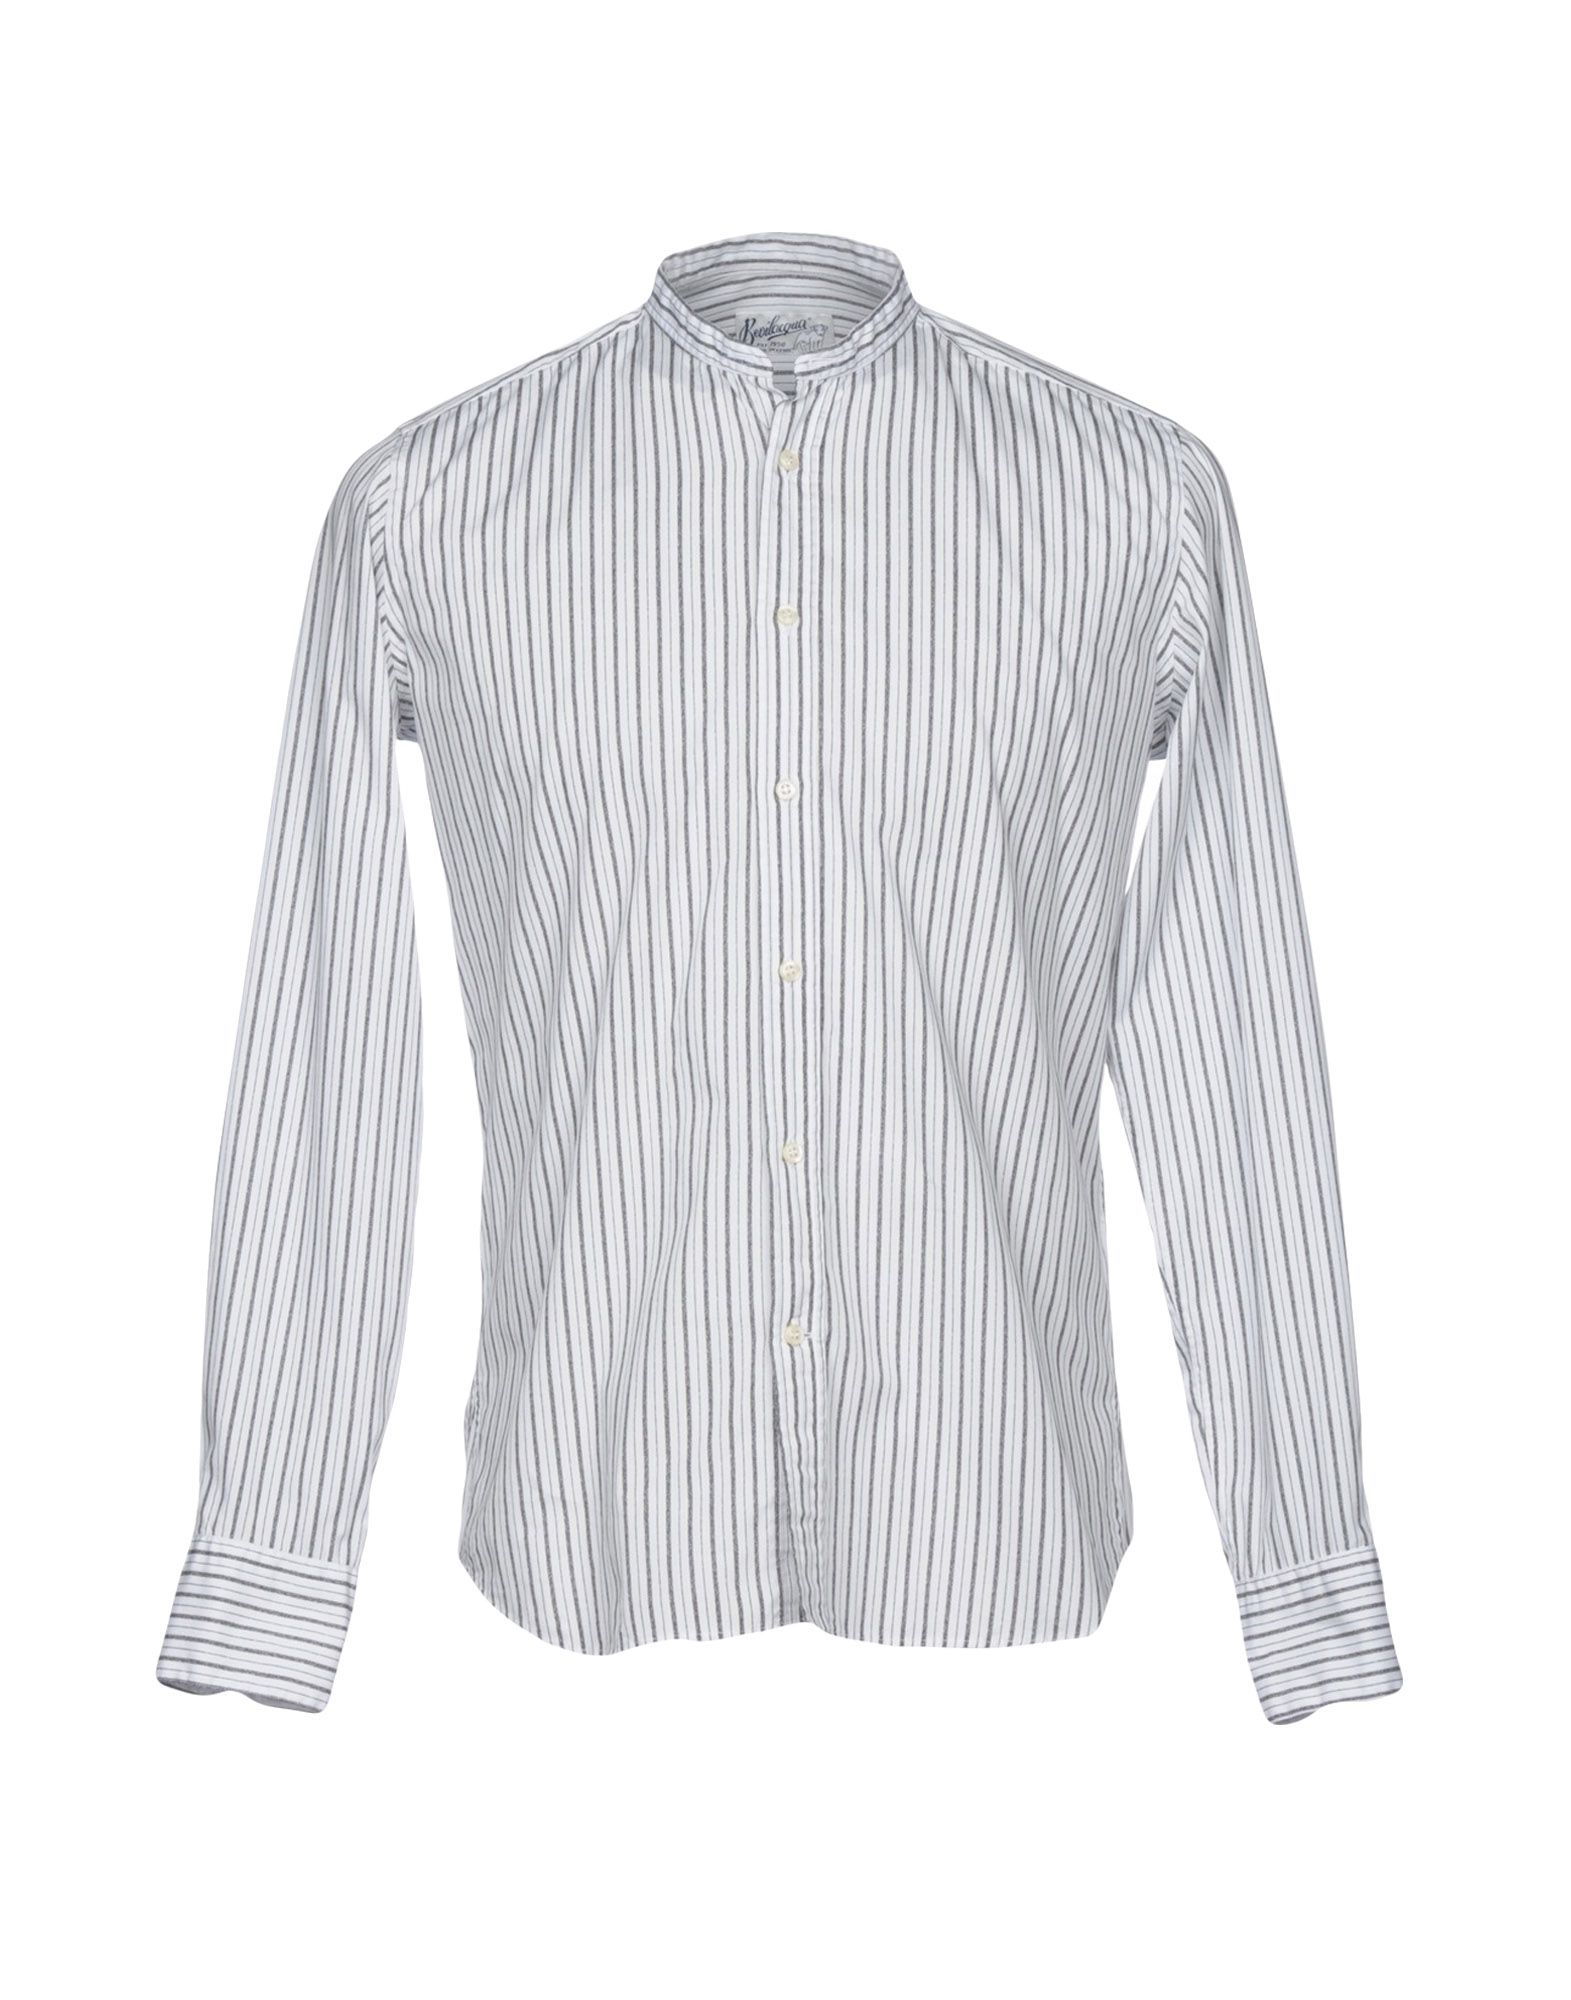 BEVILACQUA Striped Shirt in Grey